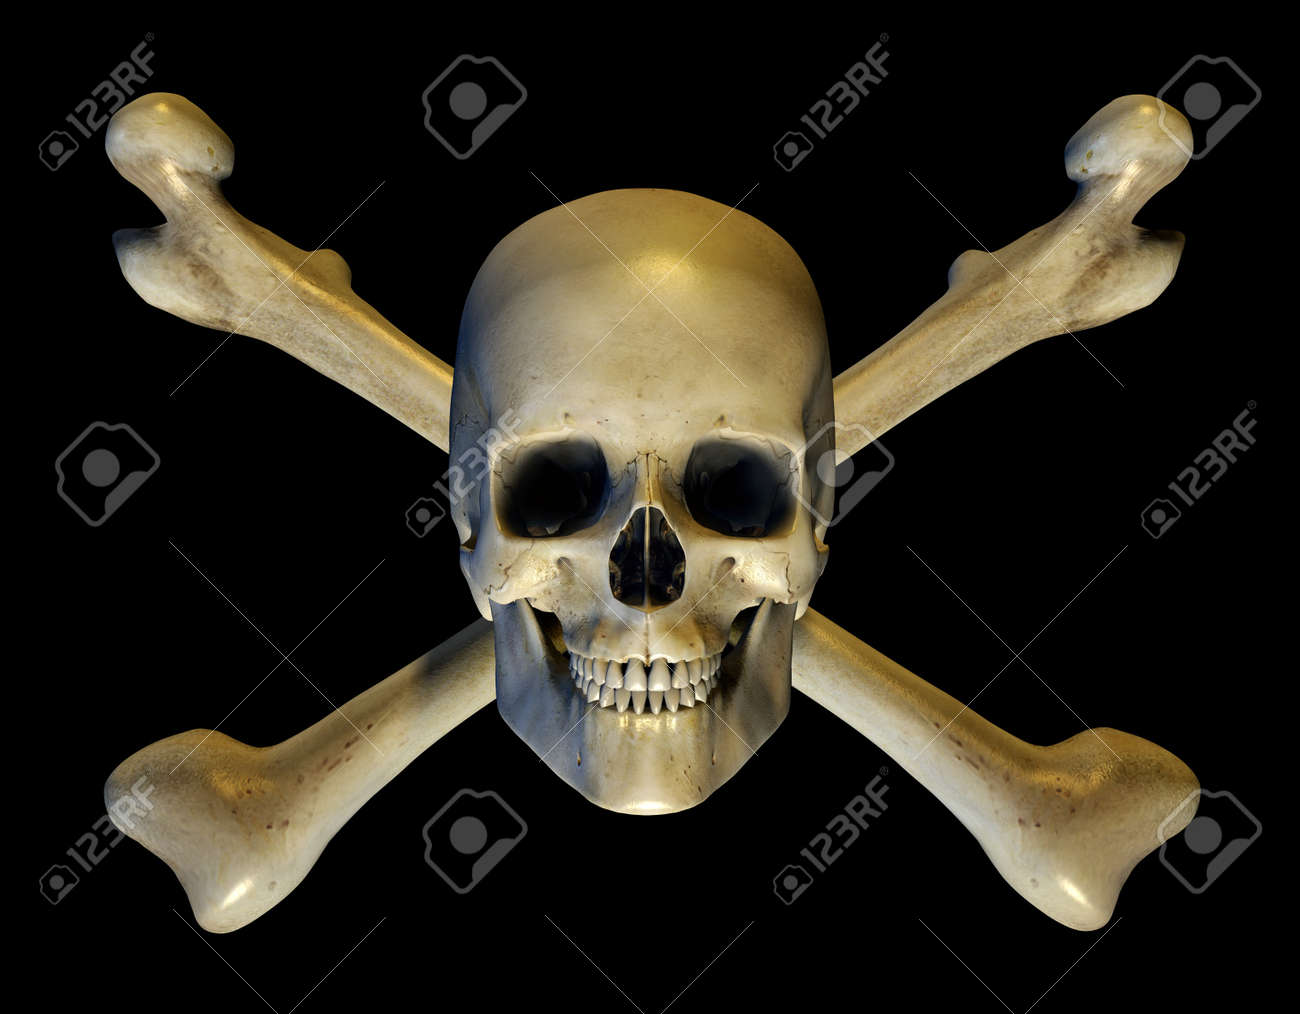 pirate threat stock photos royalty free pirate threat images and